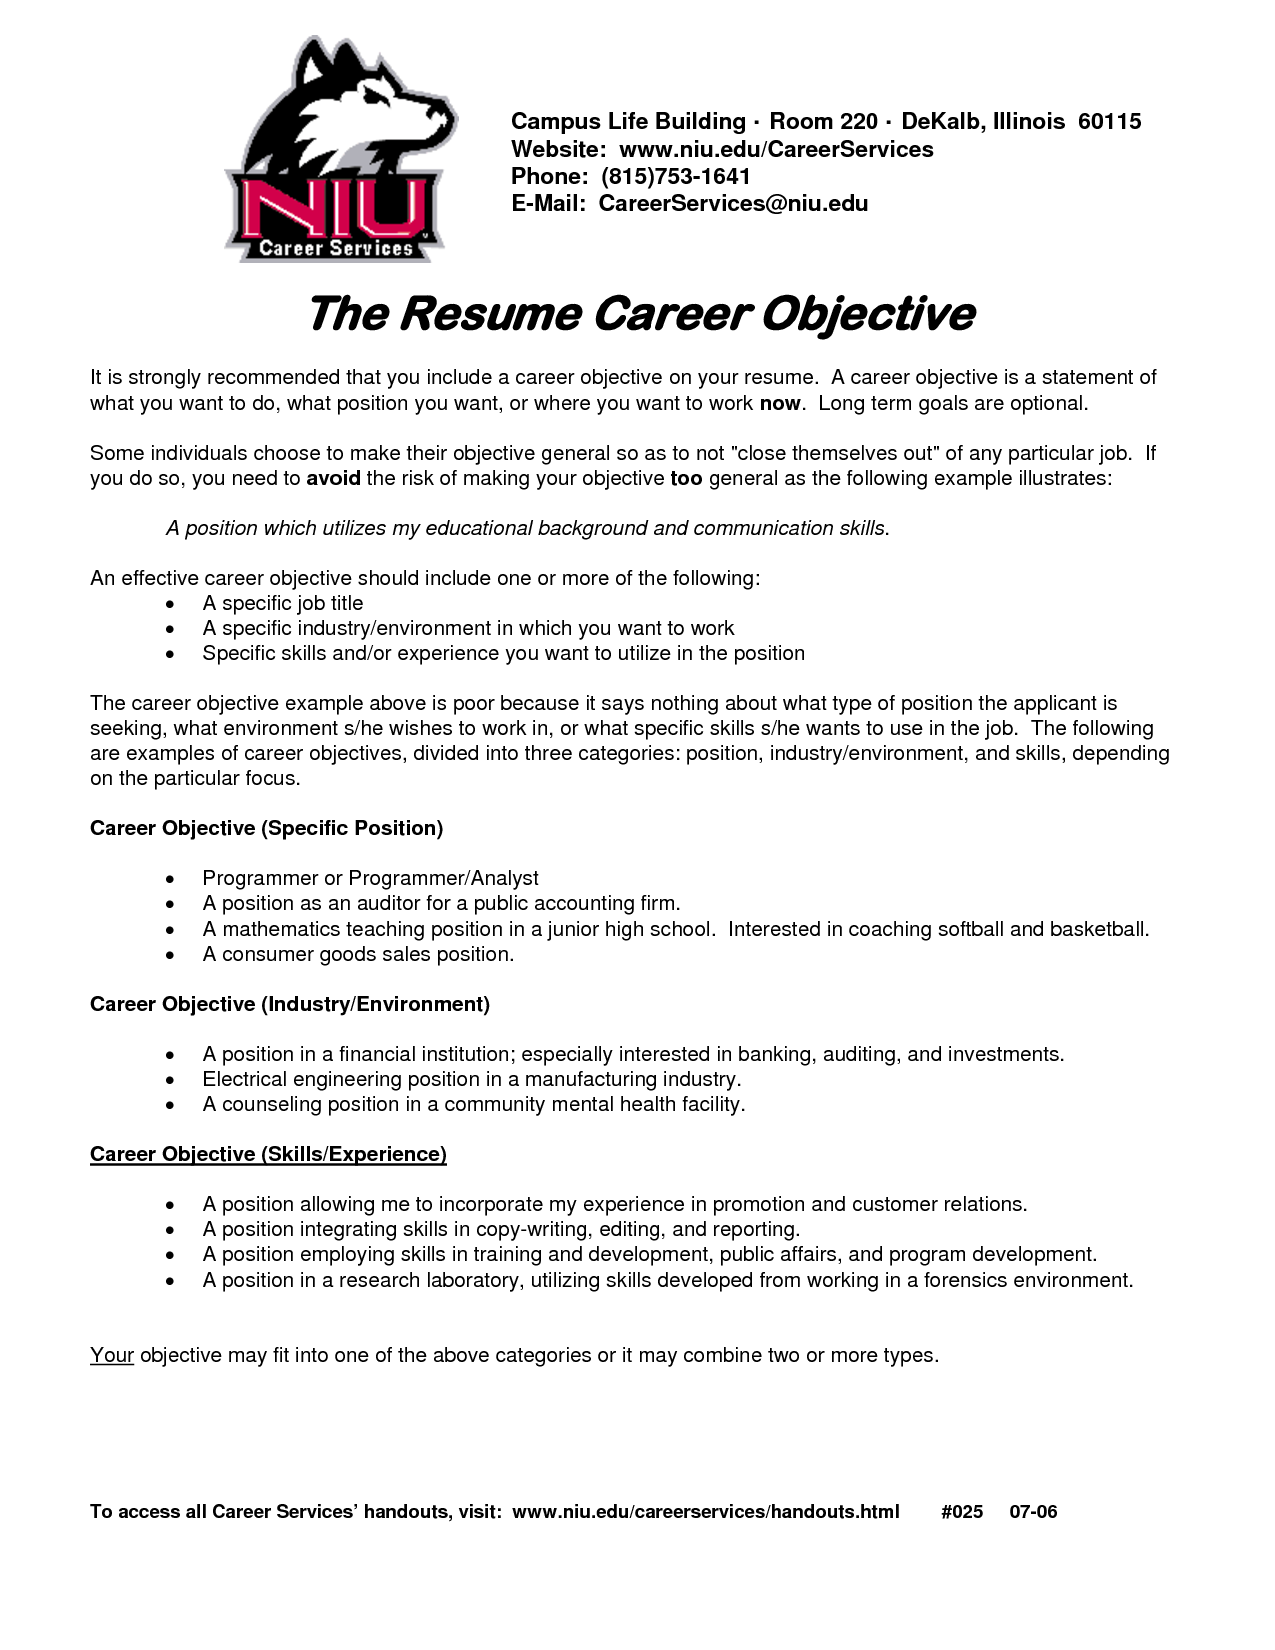 How To Write An Objective For Resume Httpswwwgooglesearchqobjective Resume  Resume